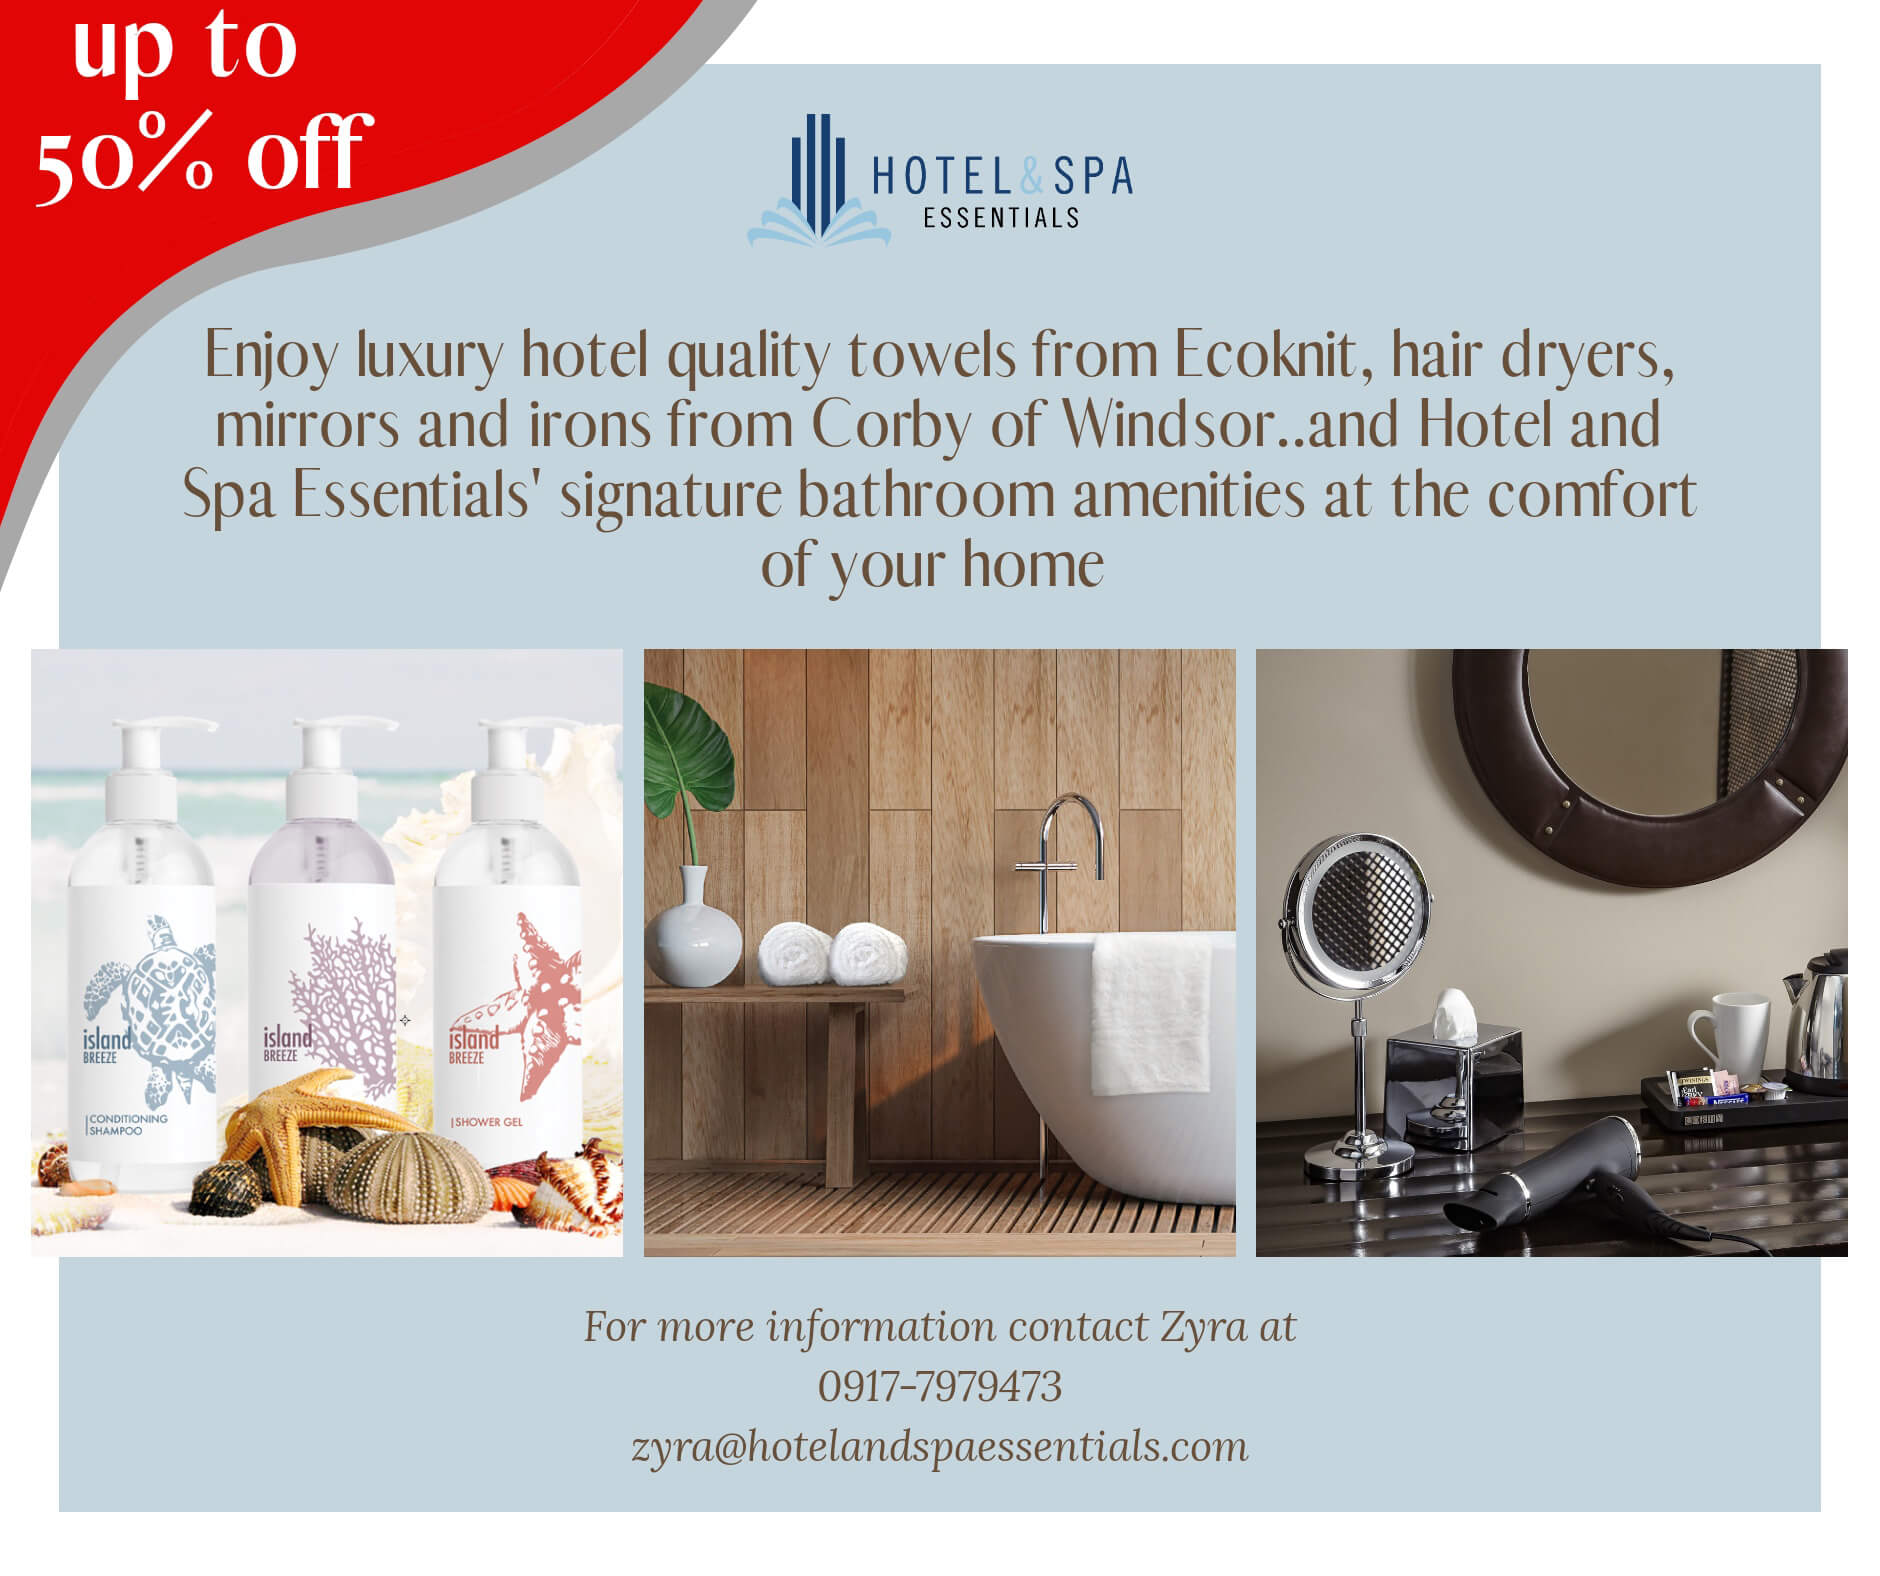 Hotel Spa Essentials offers up to 50% off